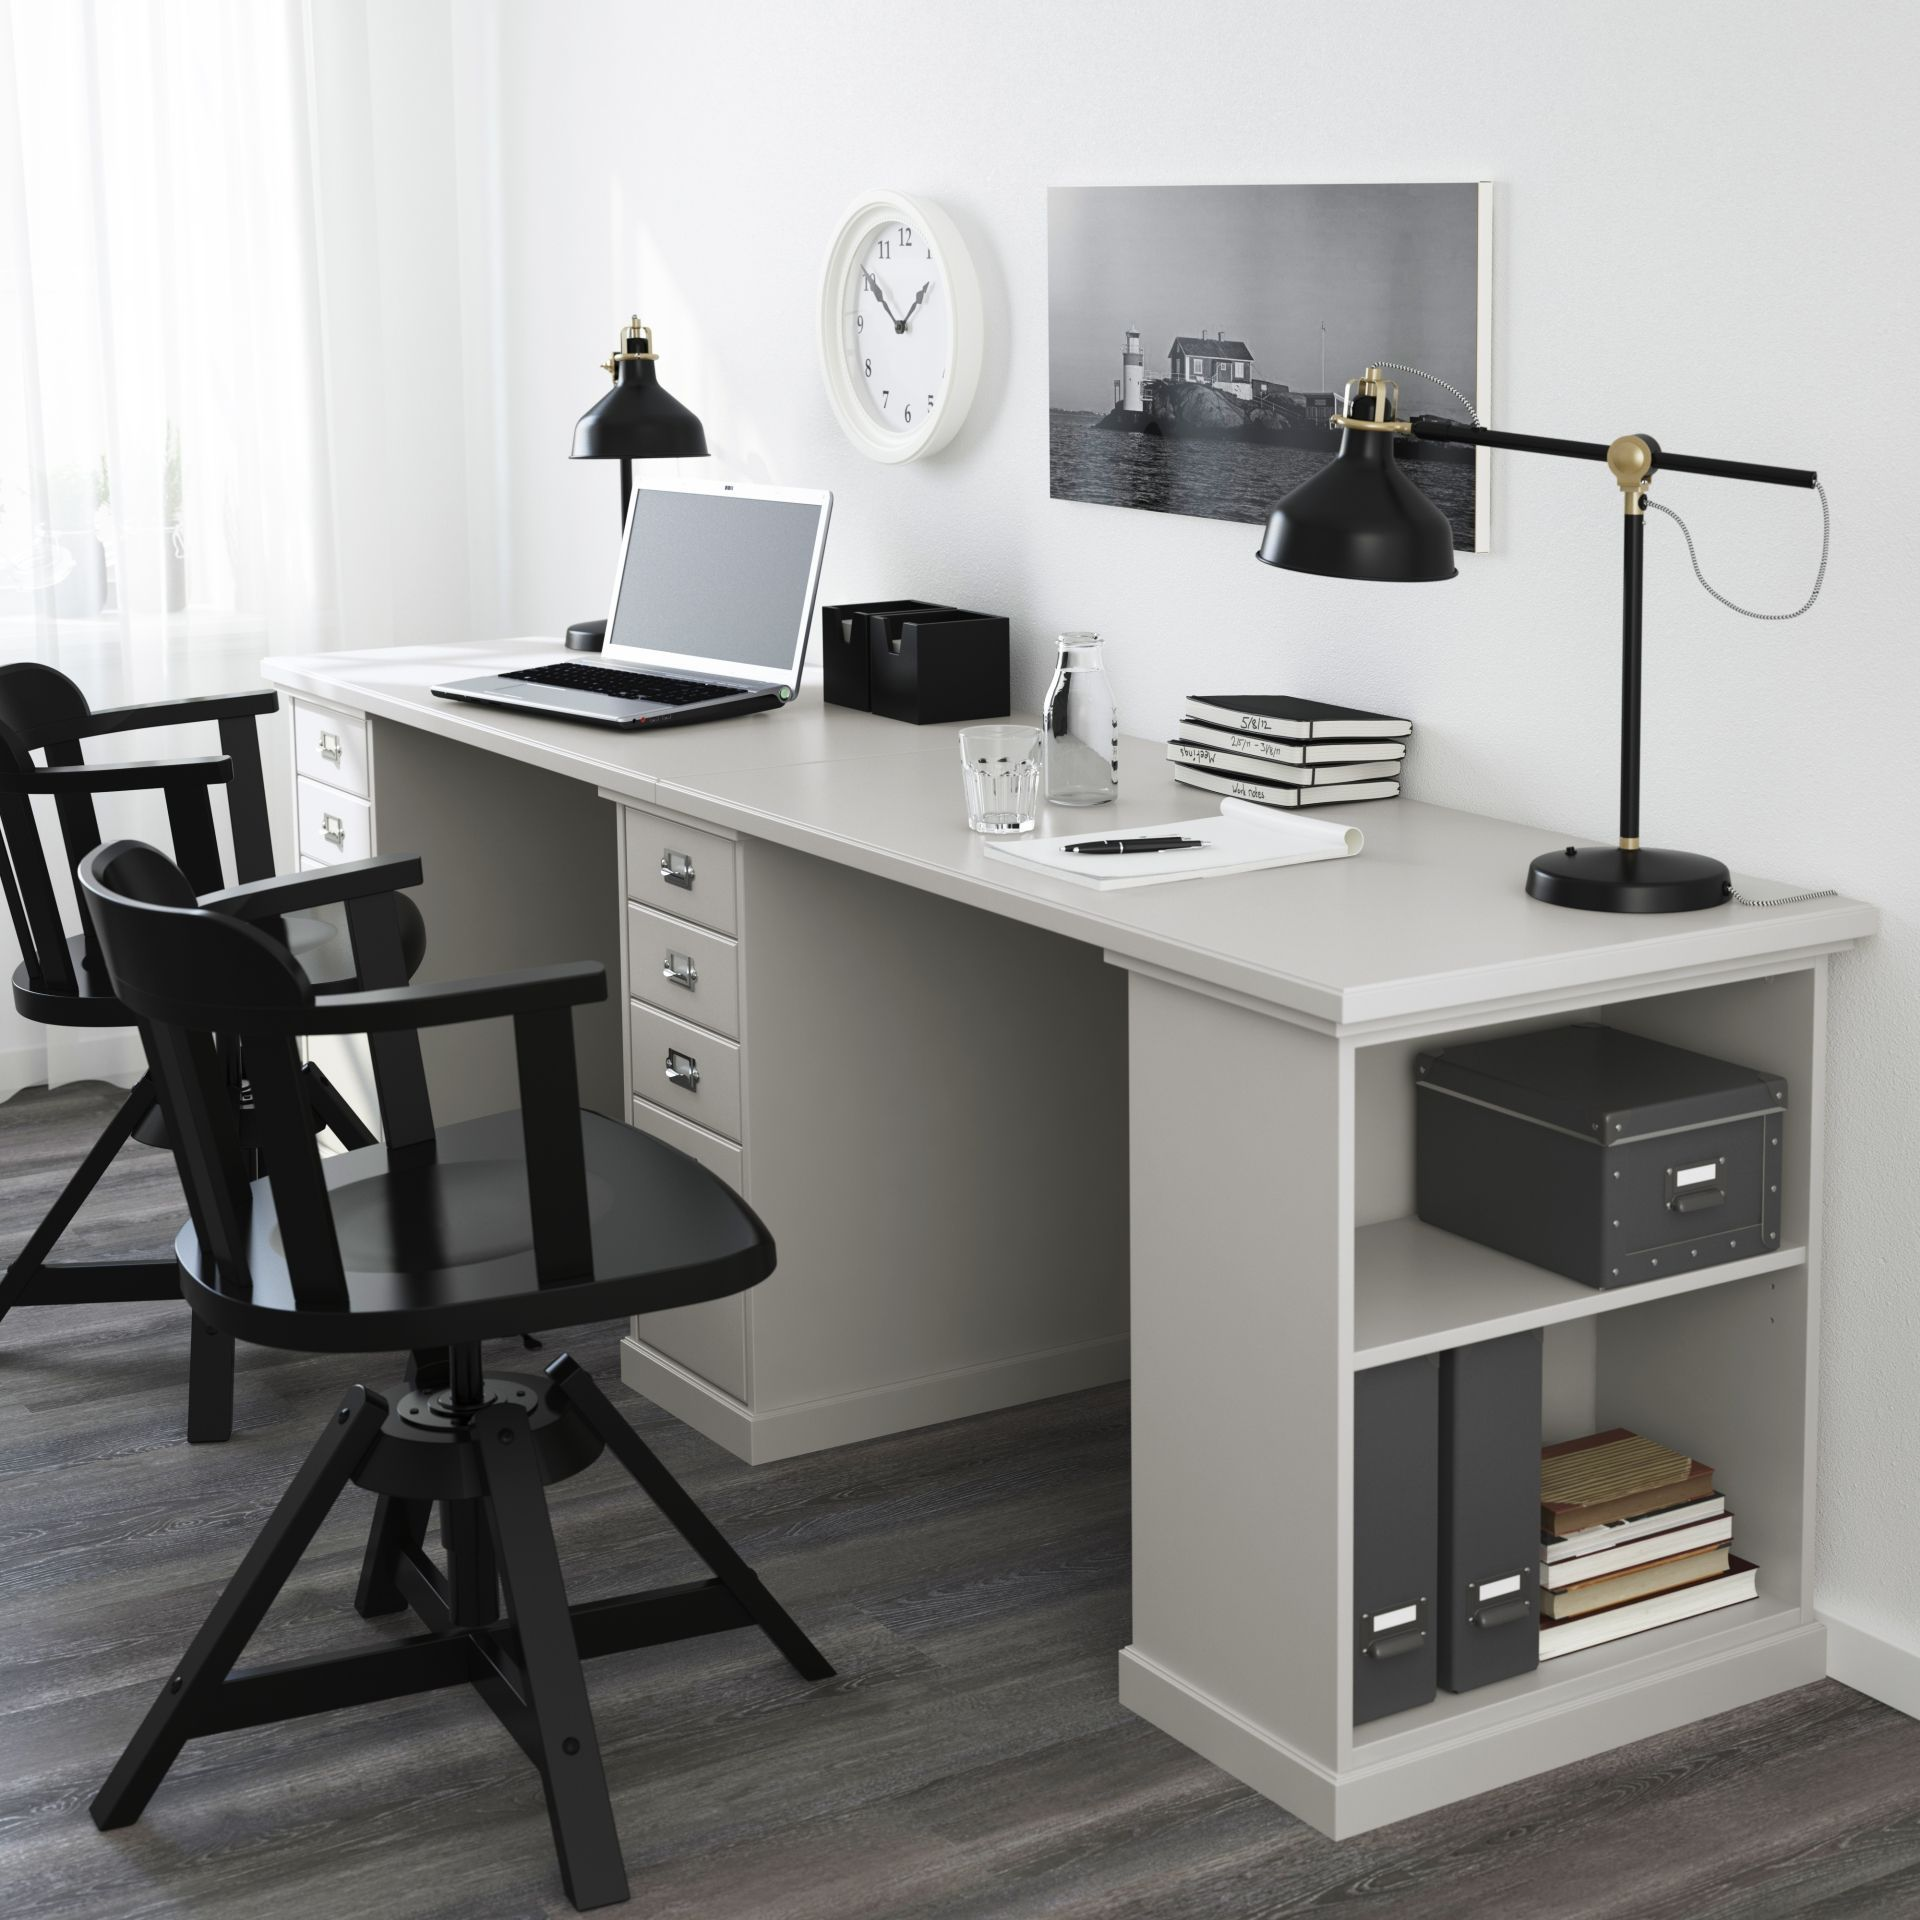 Image Result For Klimpen Desk Hack Home Office Furniture Cheap Office Furniture Home Office Space